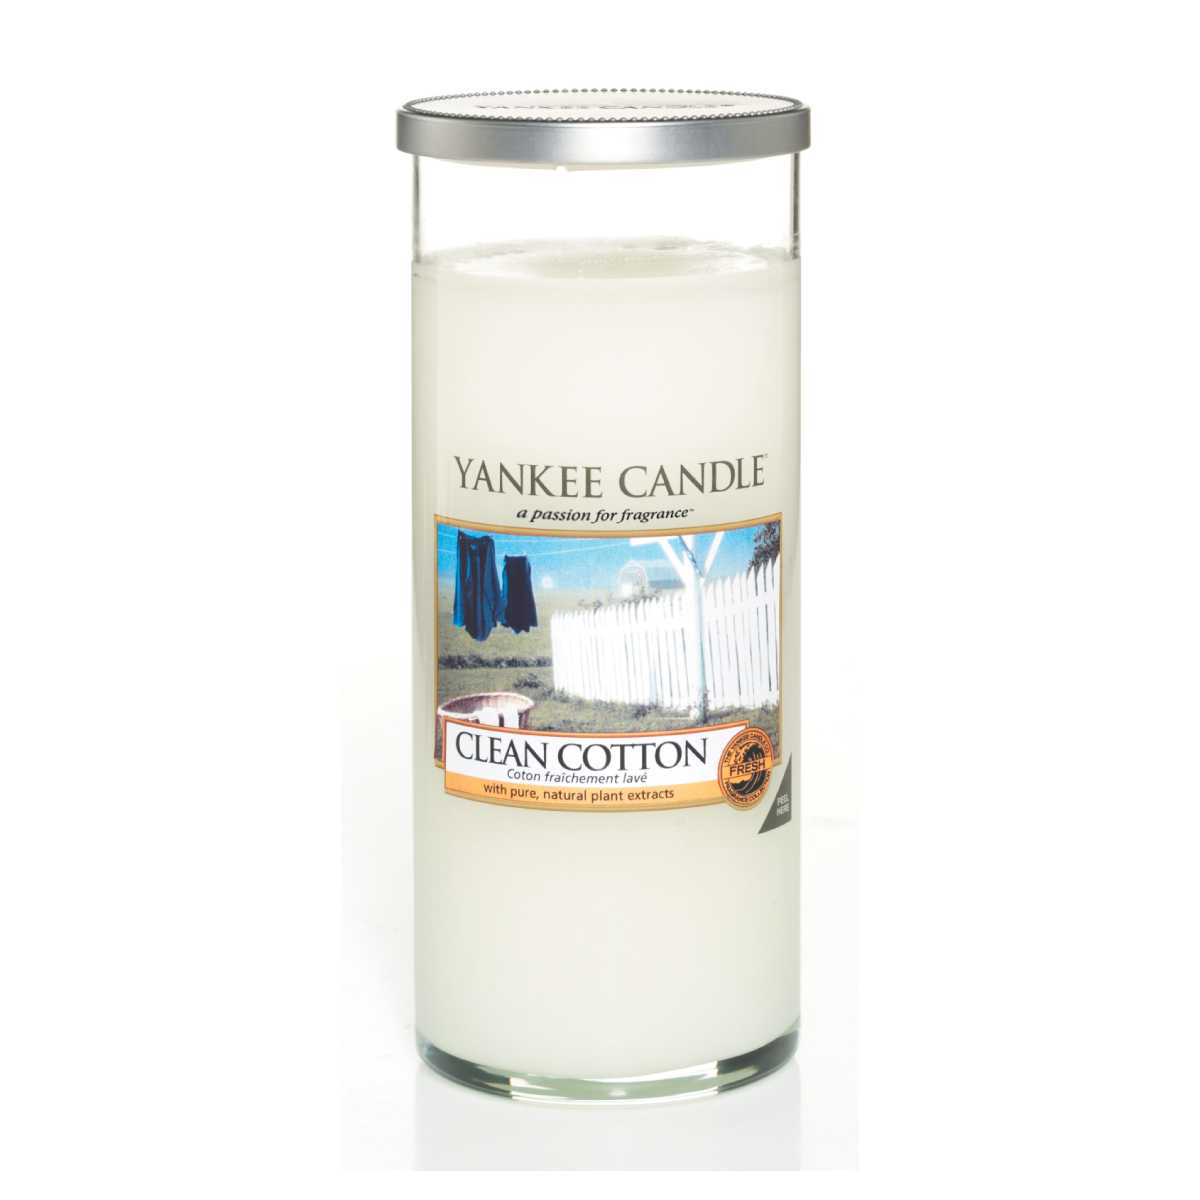 YANKEE CANDLE Vonná svíčka Clean Cotton – L